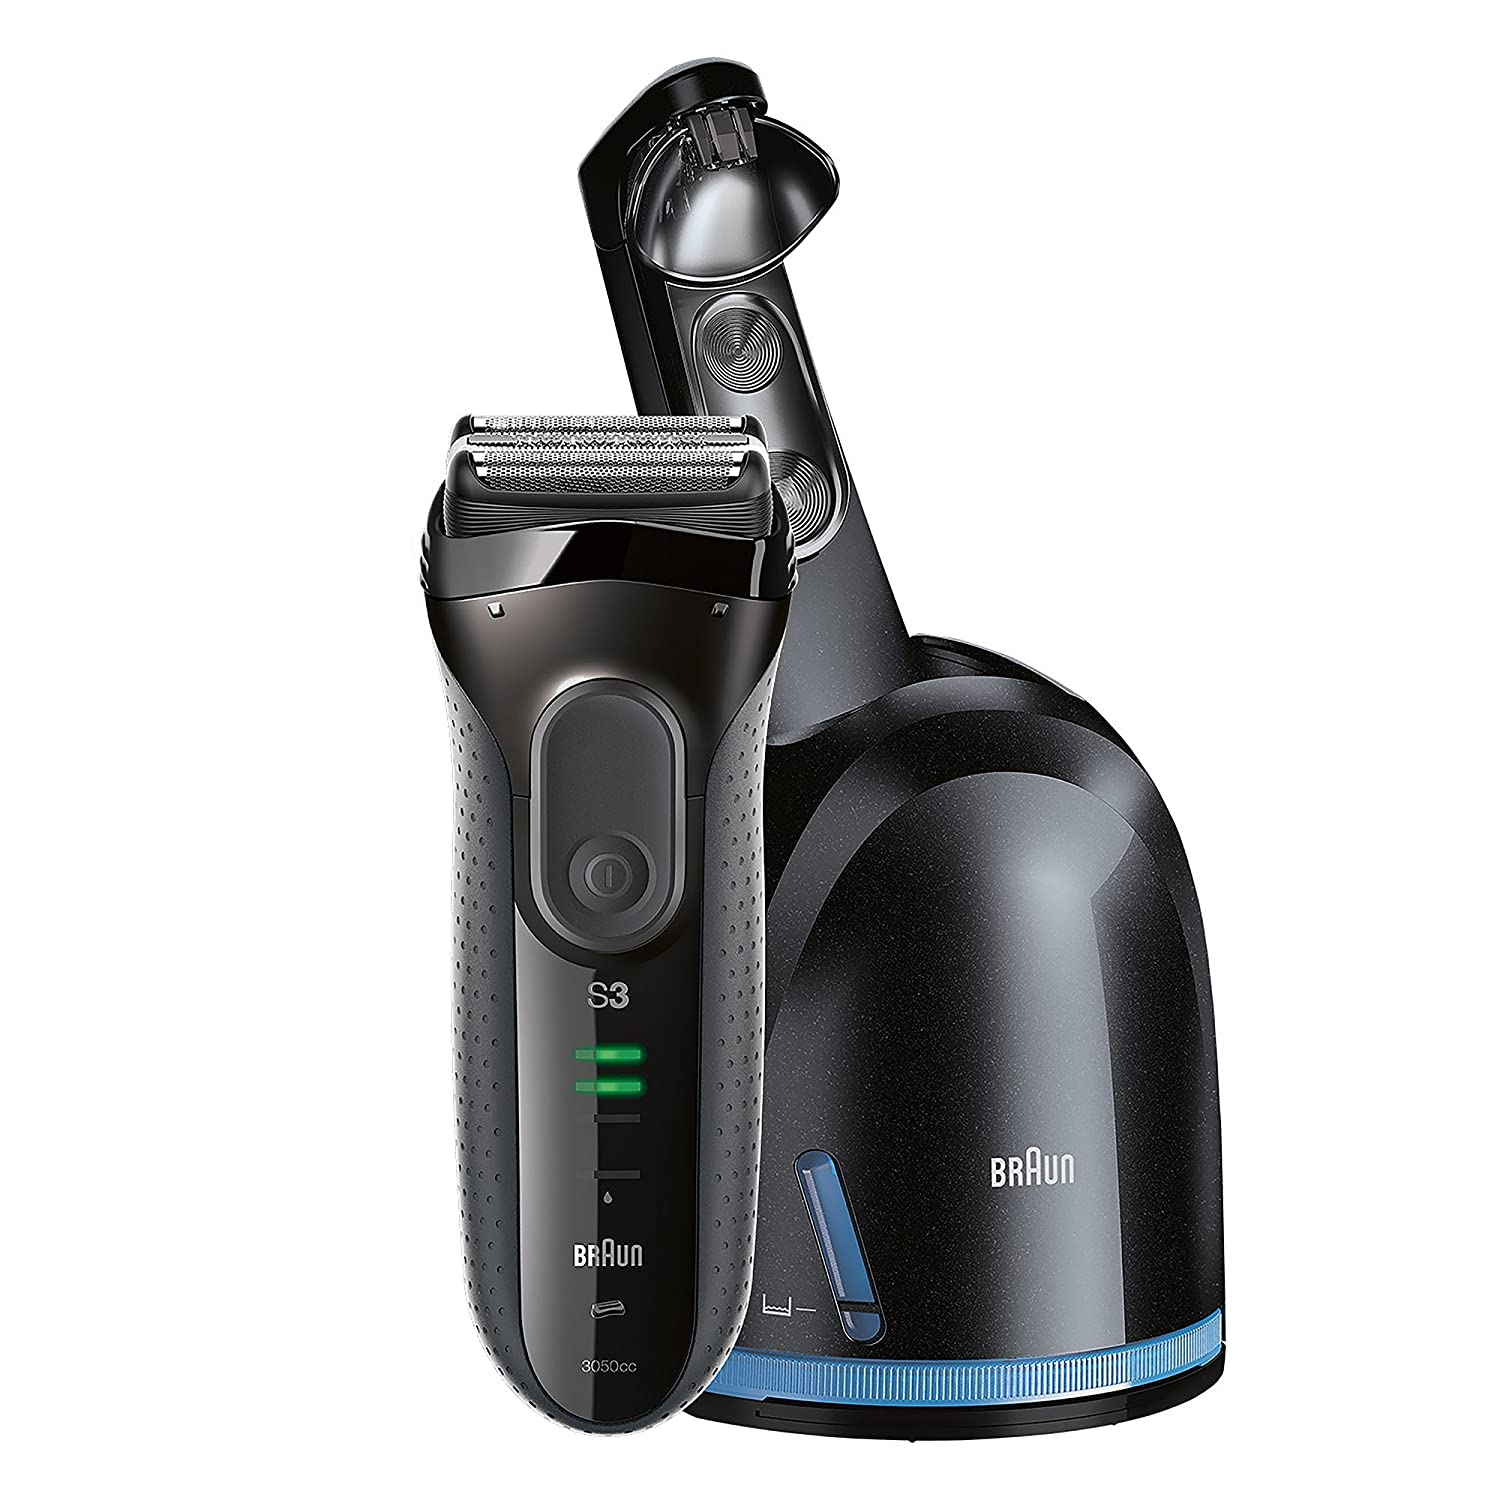 Braun 3050cc Male Shaver (Black/Grey)